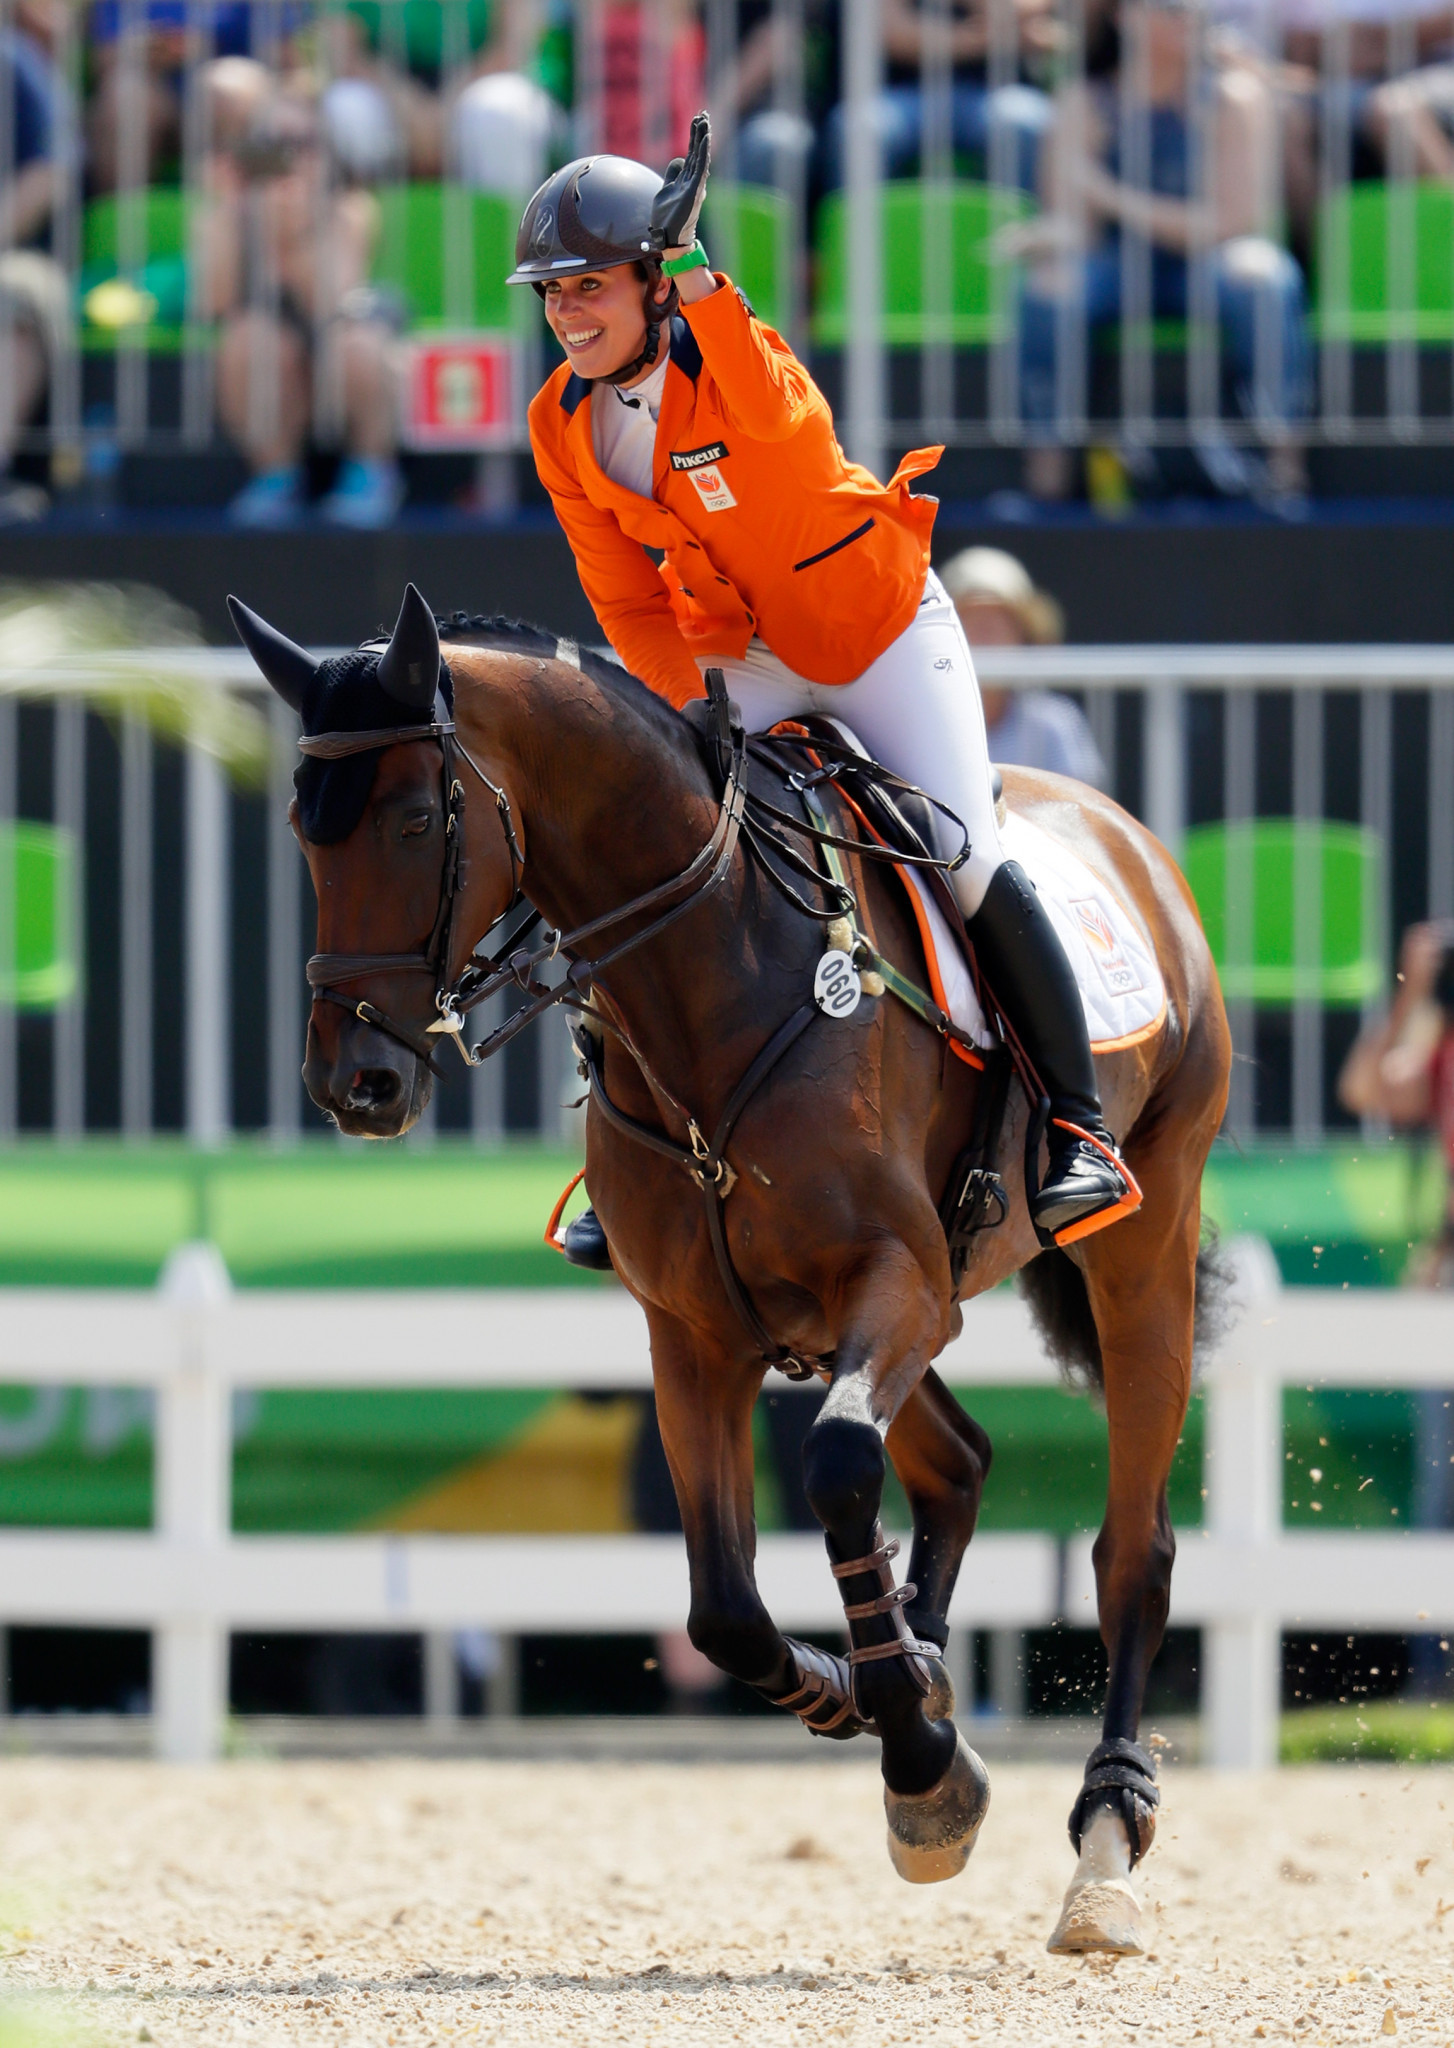 Blom retains lead at FEI Nations Cup Eventing in Waregem